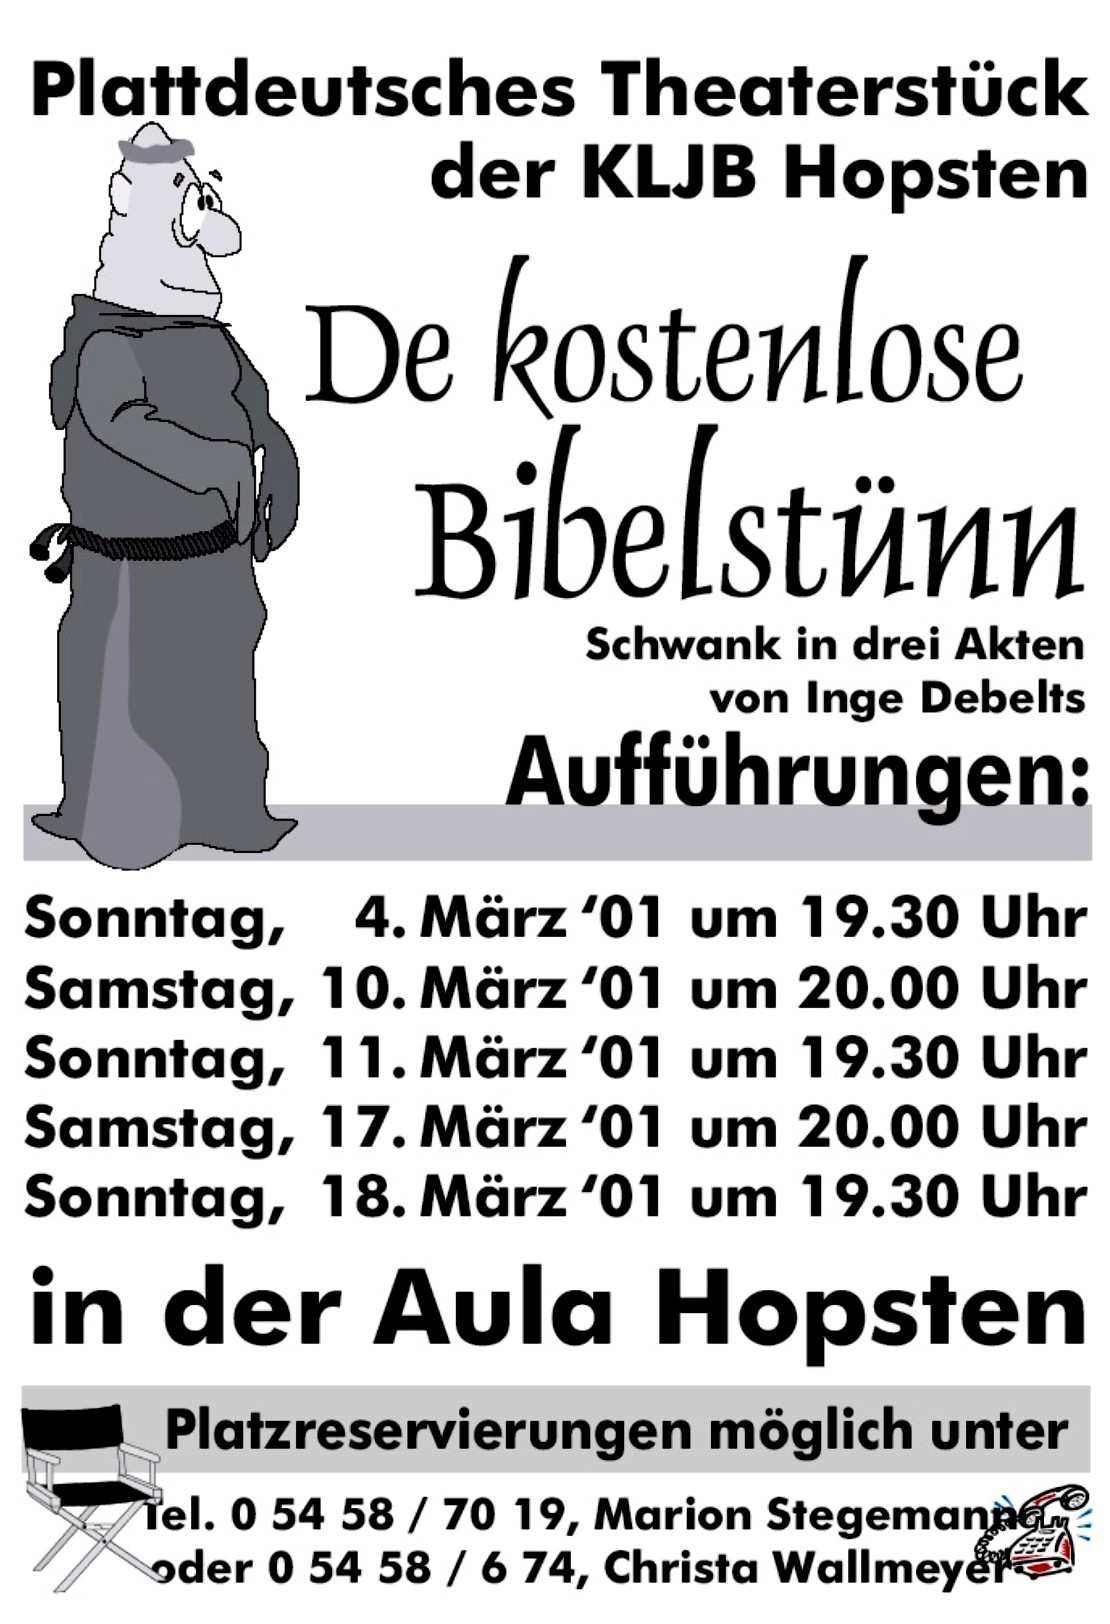 Theaterplakat 2001